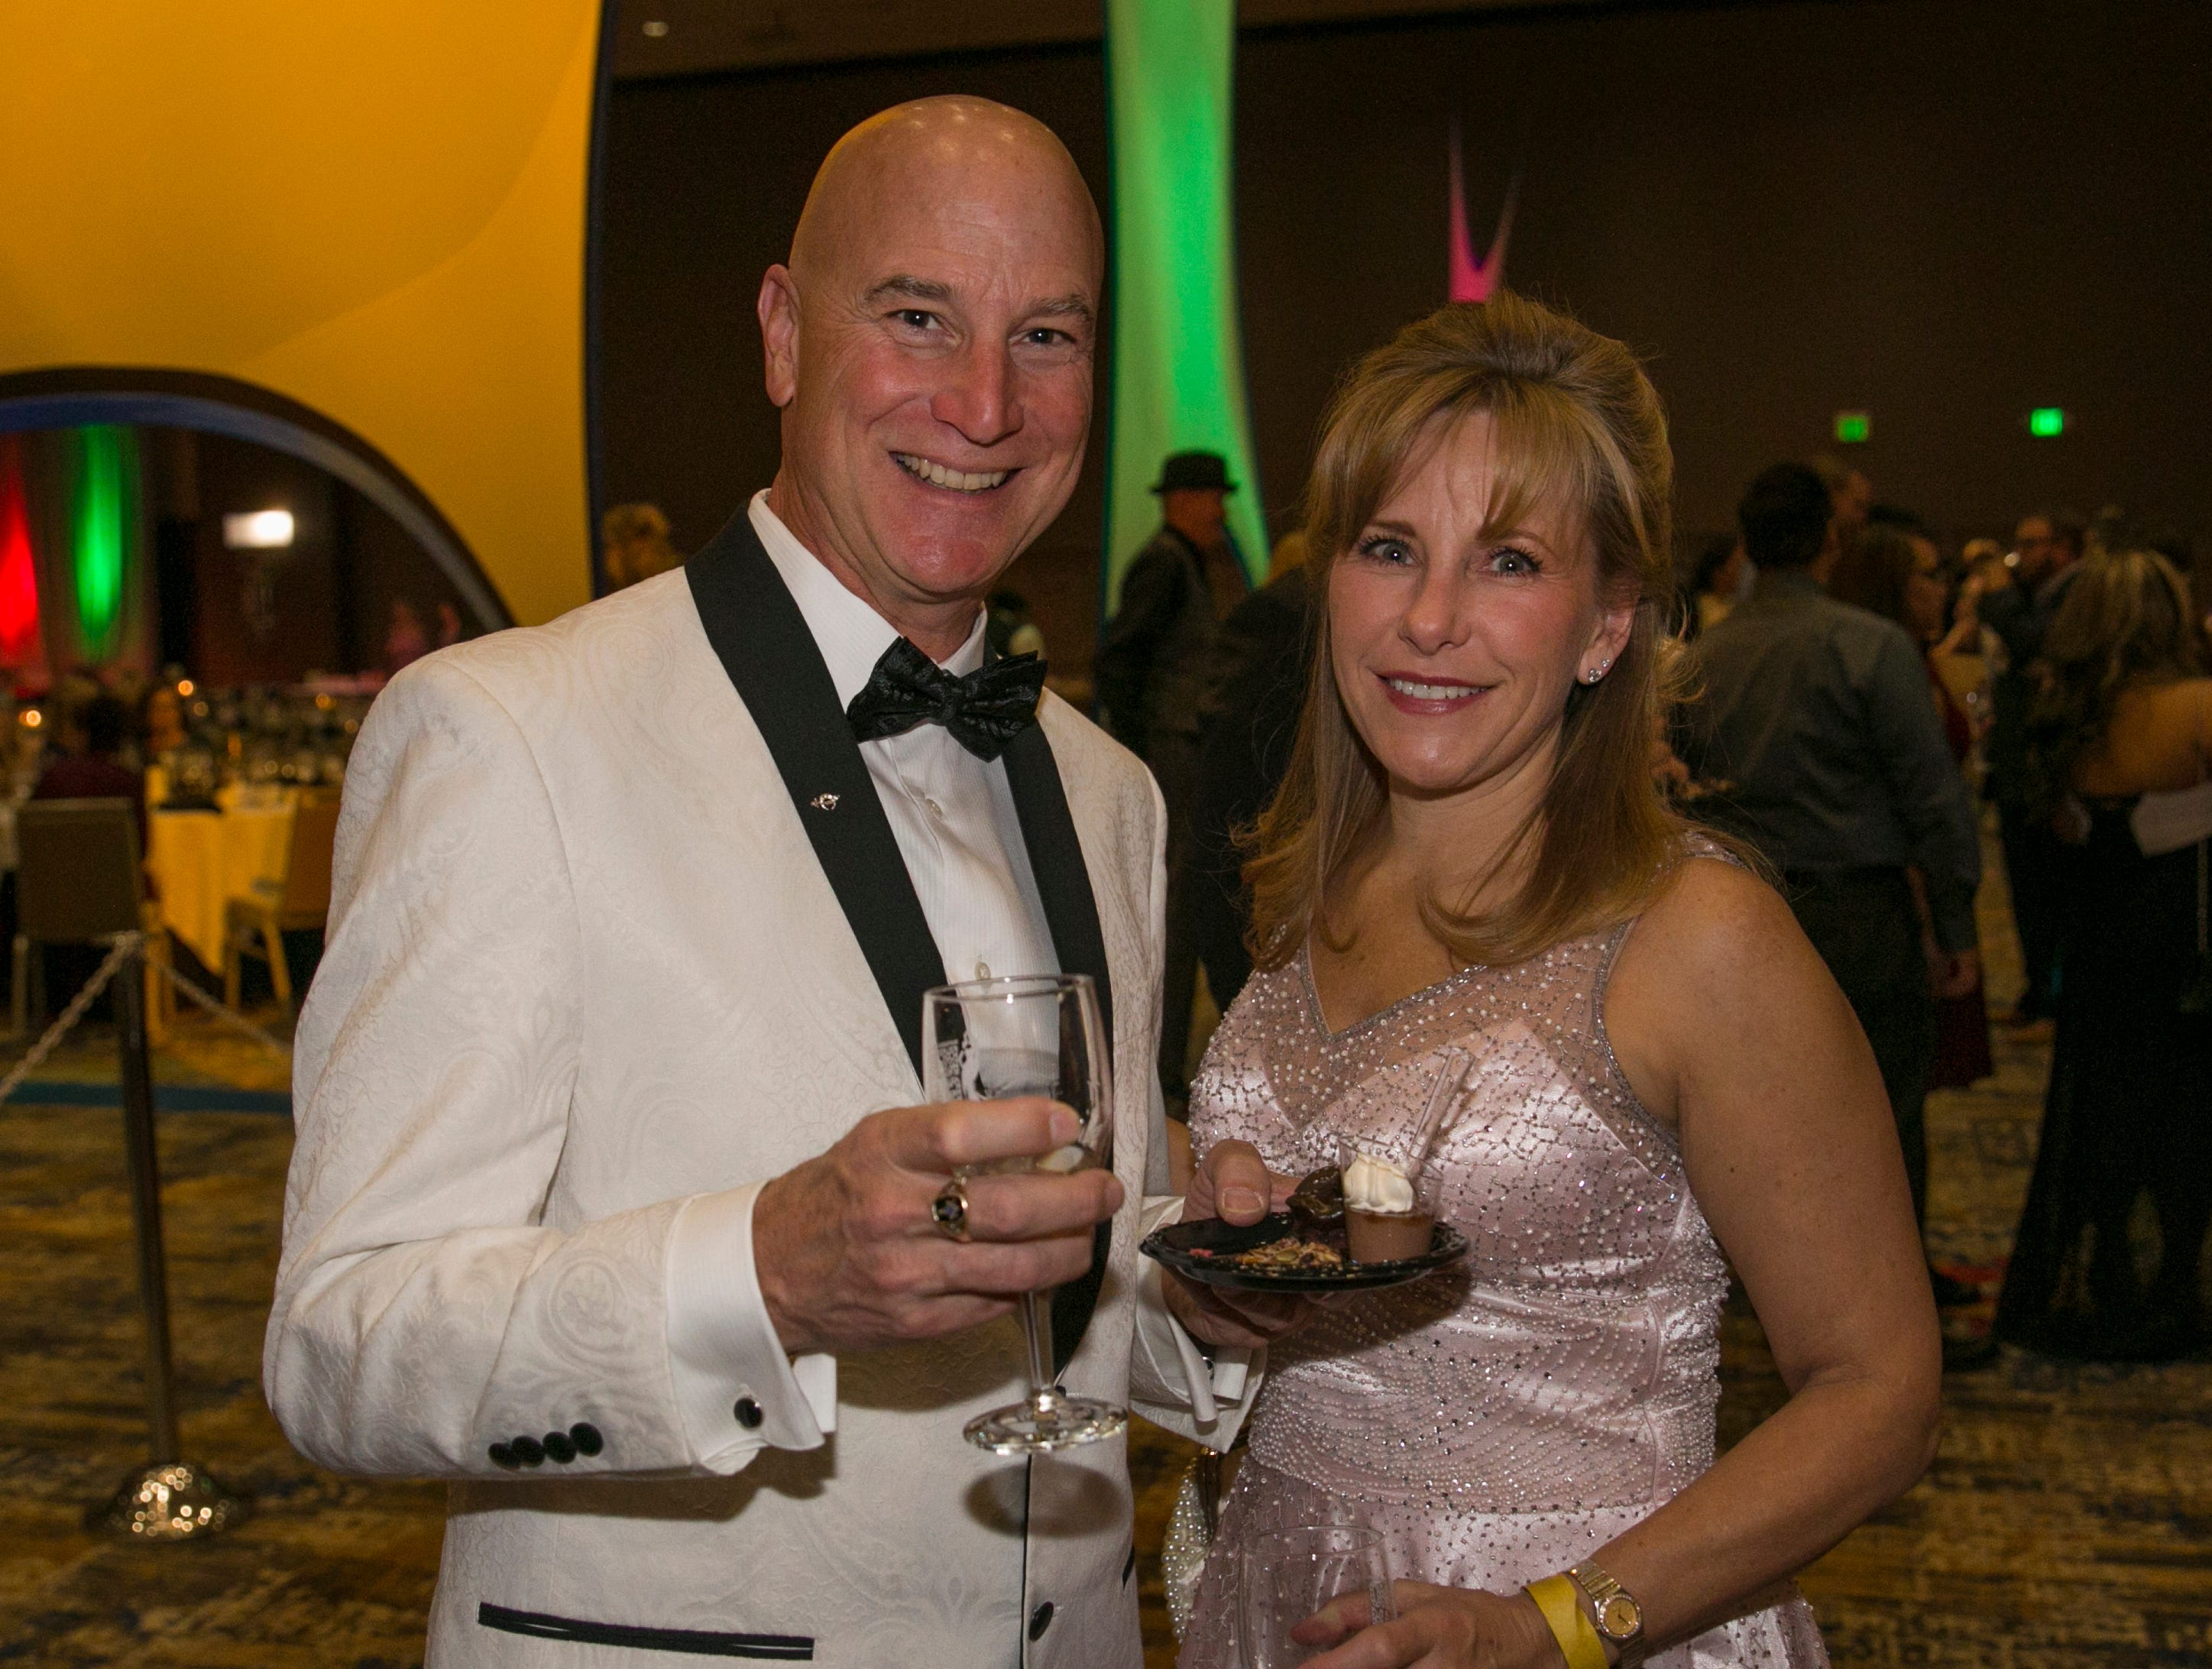 Photos from Fantasies in Chocolate on Saturday night at the GSR.